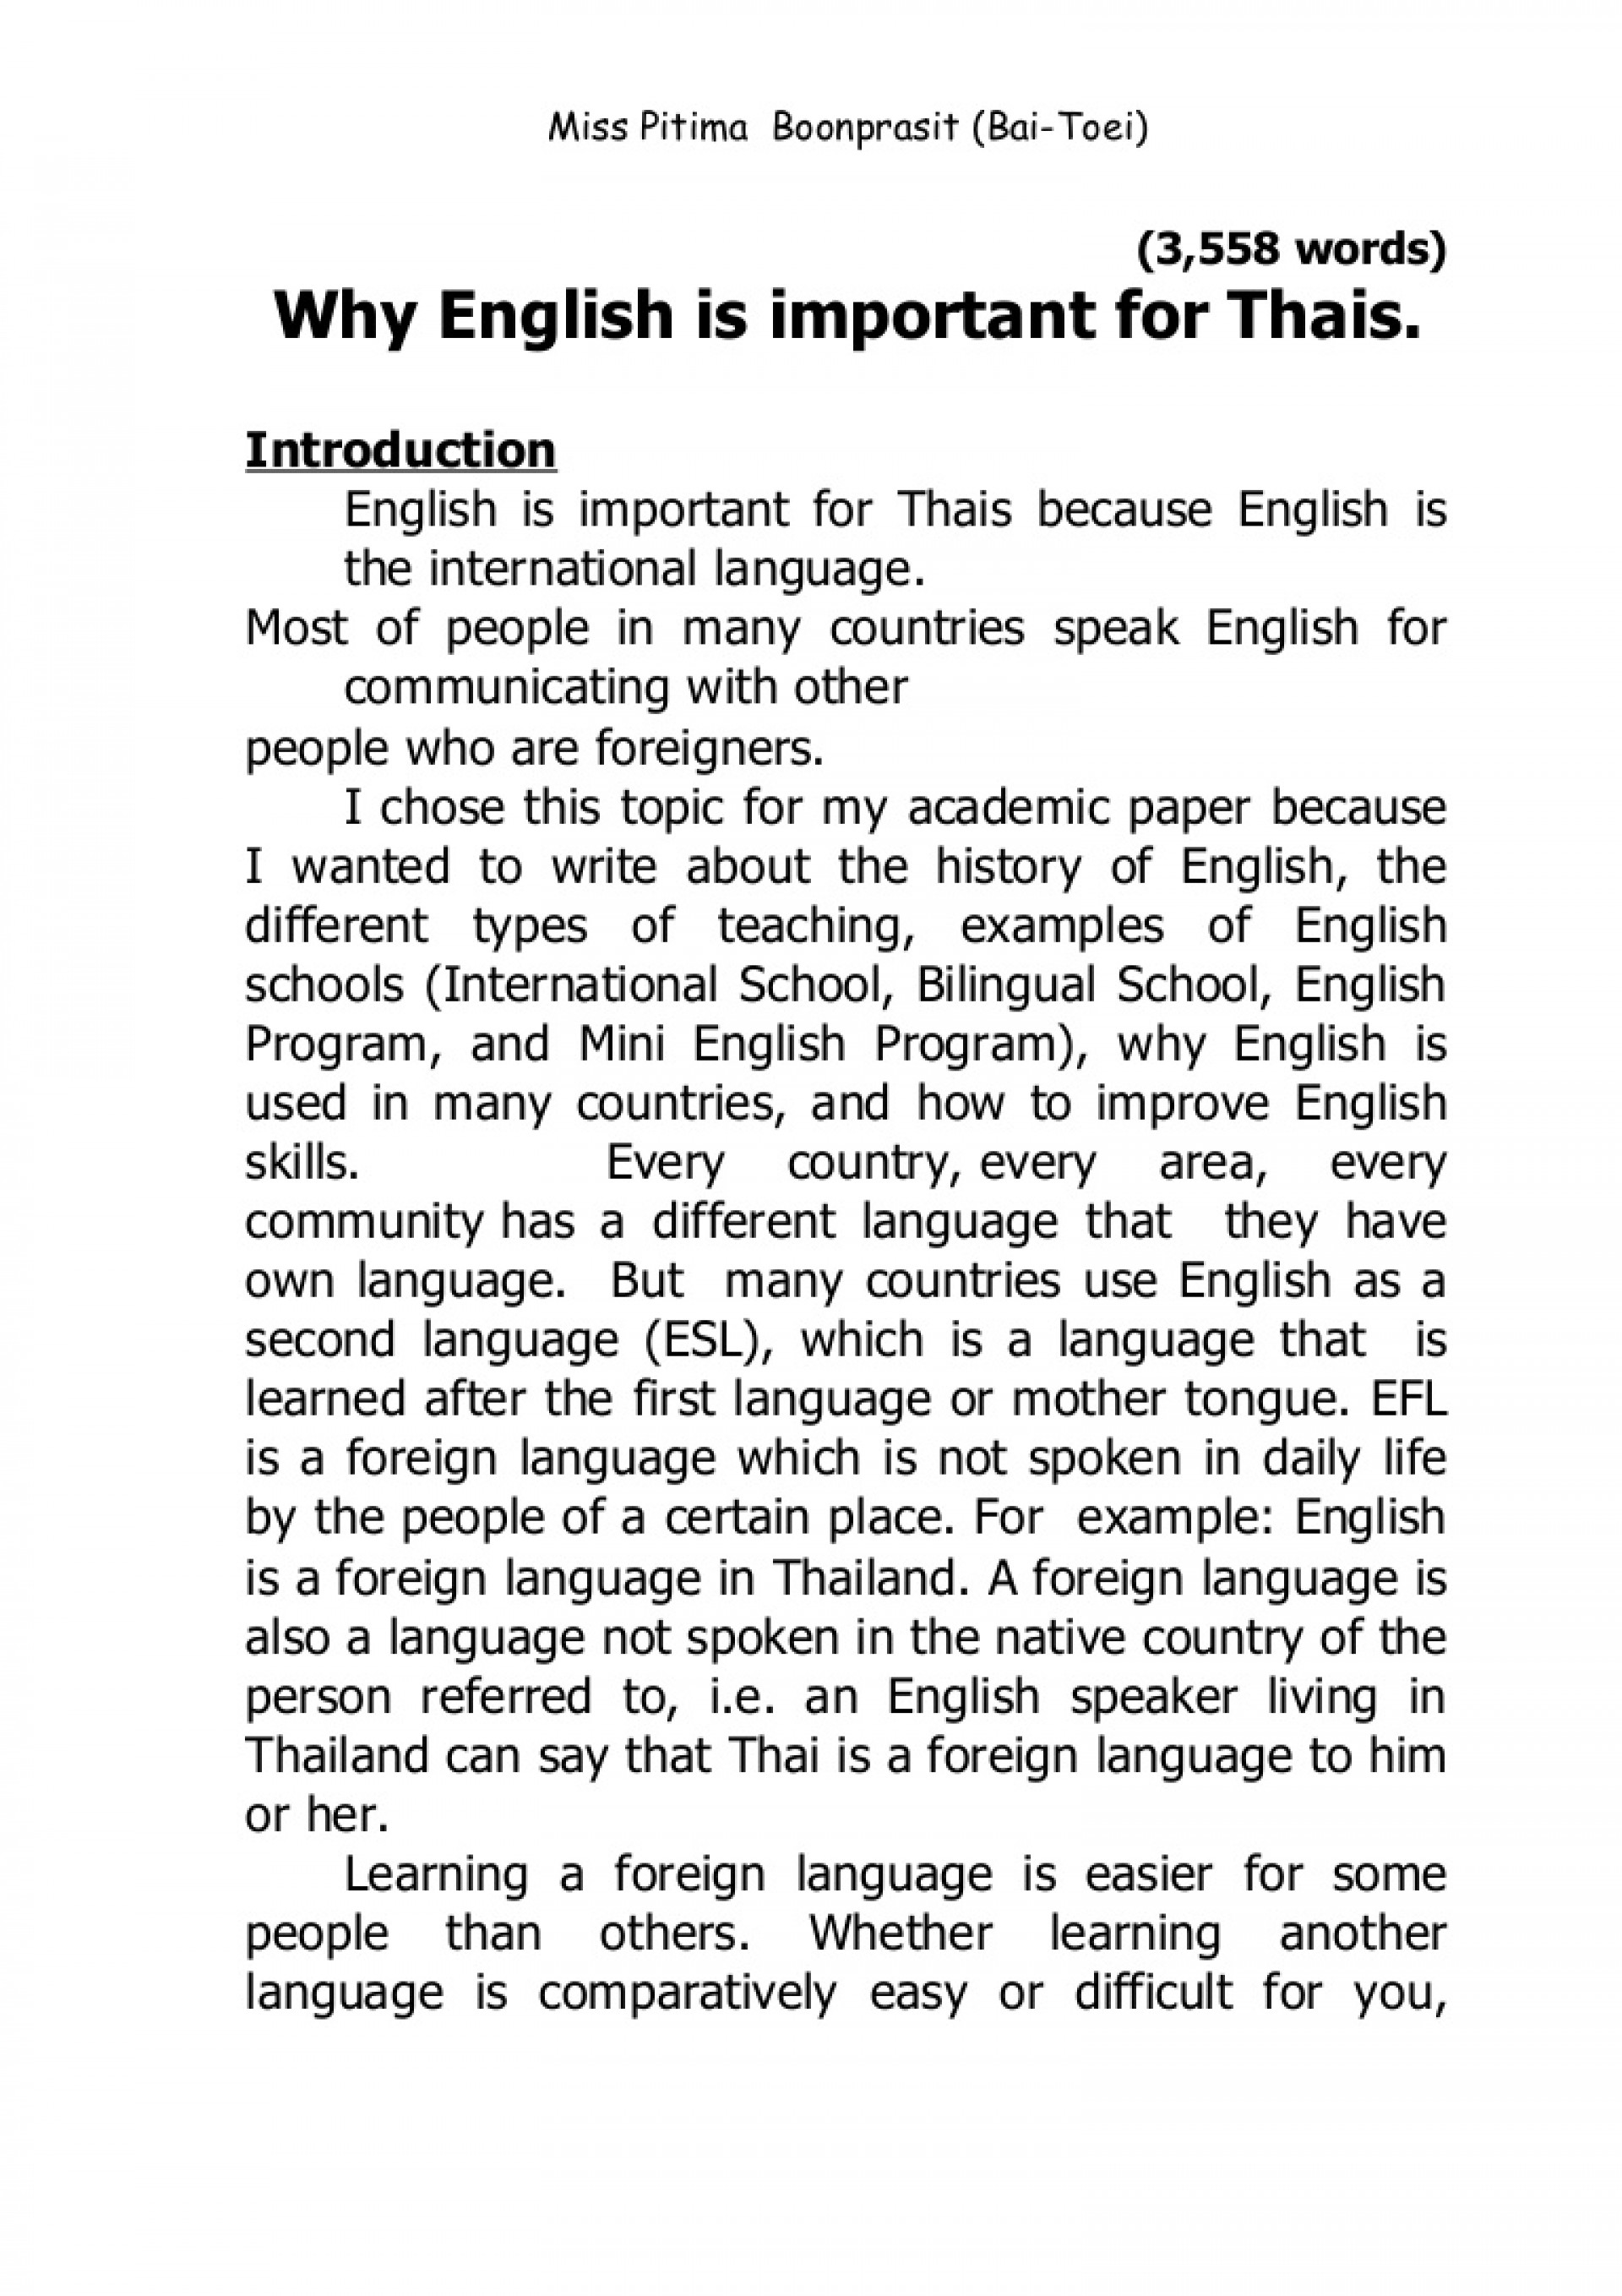 002 Essay Example Finalpaper Phpapp01 Thumbnail Importance Of Sensational Writing In English Education Skills To Students 1920